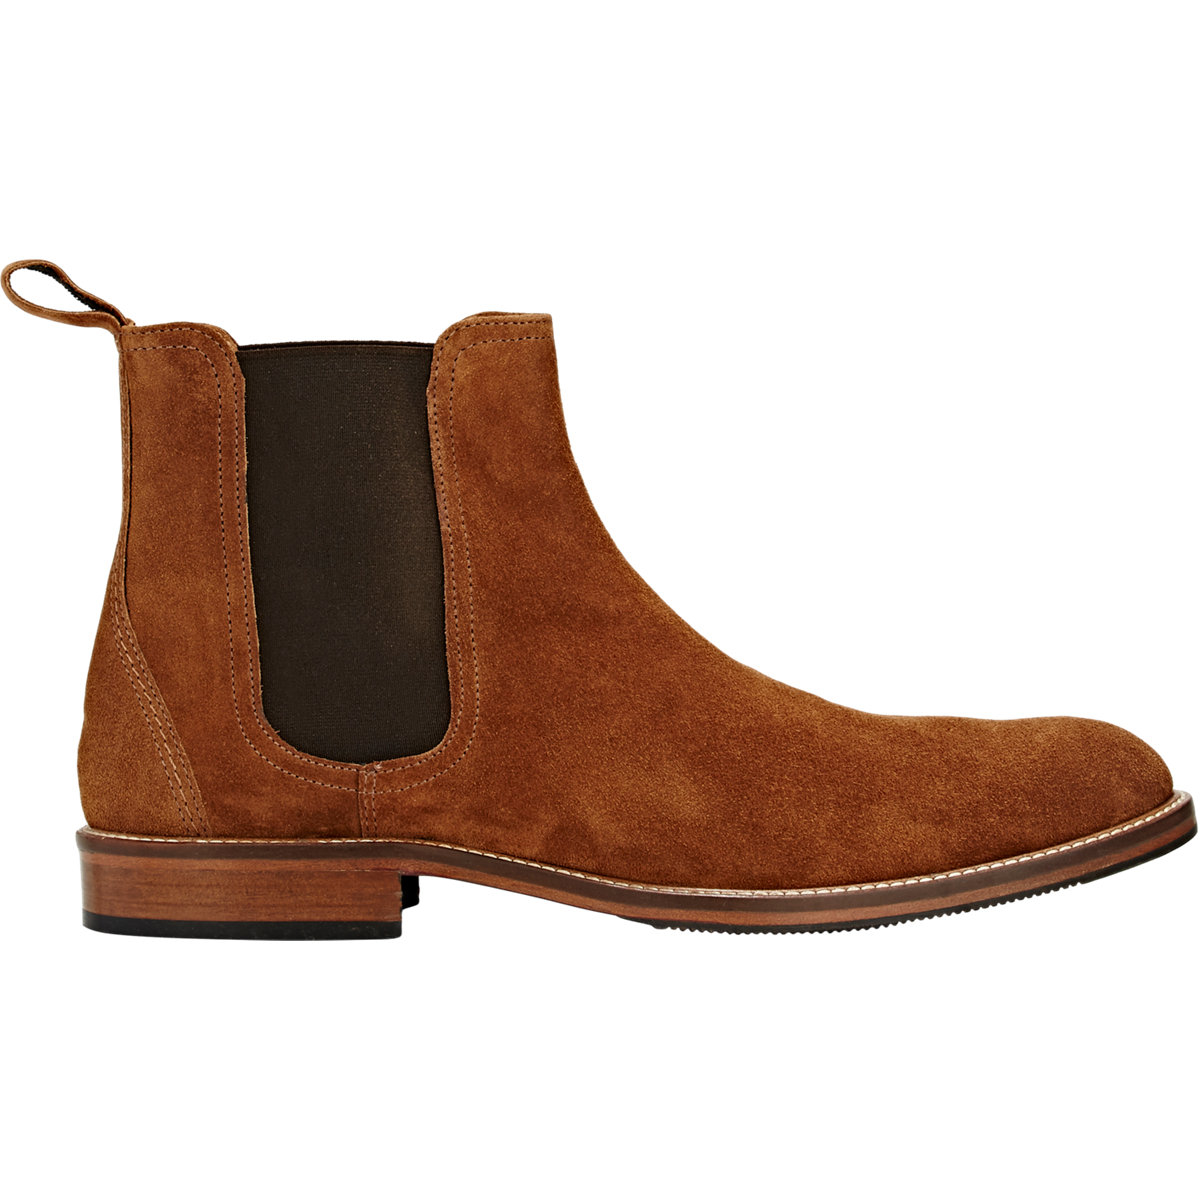 Discover the latest range of men's boots with ASOS. Explore the range of styles such as Chelsea boots, work boots or desert boots. Available today at ASOS. ASOS DESIGN chelsea boots in brown faux suede. $ Selected Homme Suede Desert Boots. $ Jack & Jones leather desert boots. $ River Island Suede Desert Boot In Black.